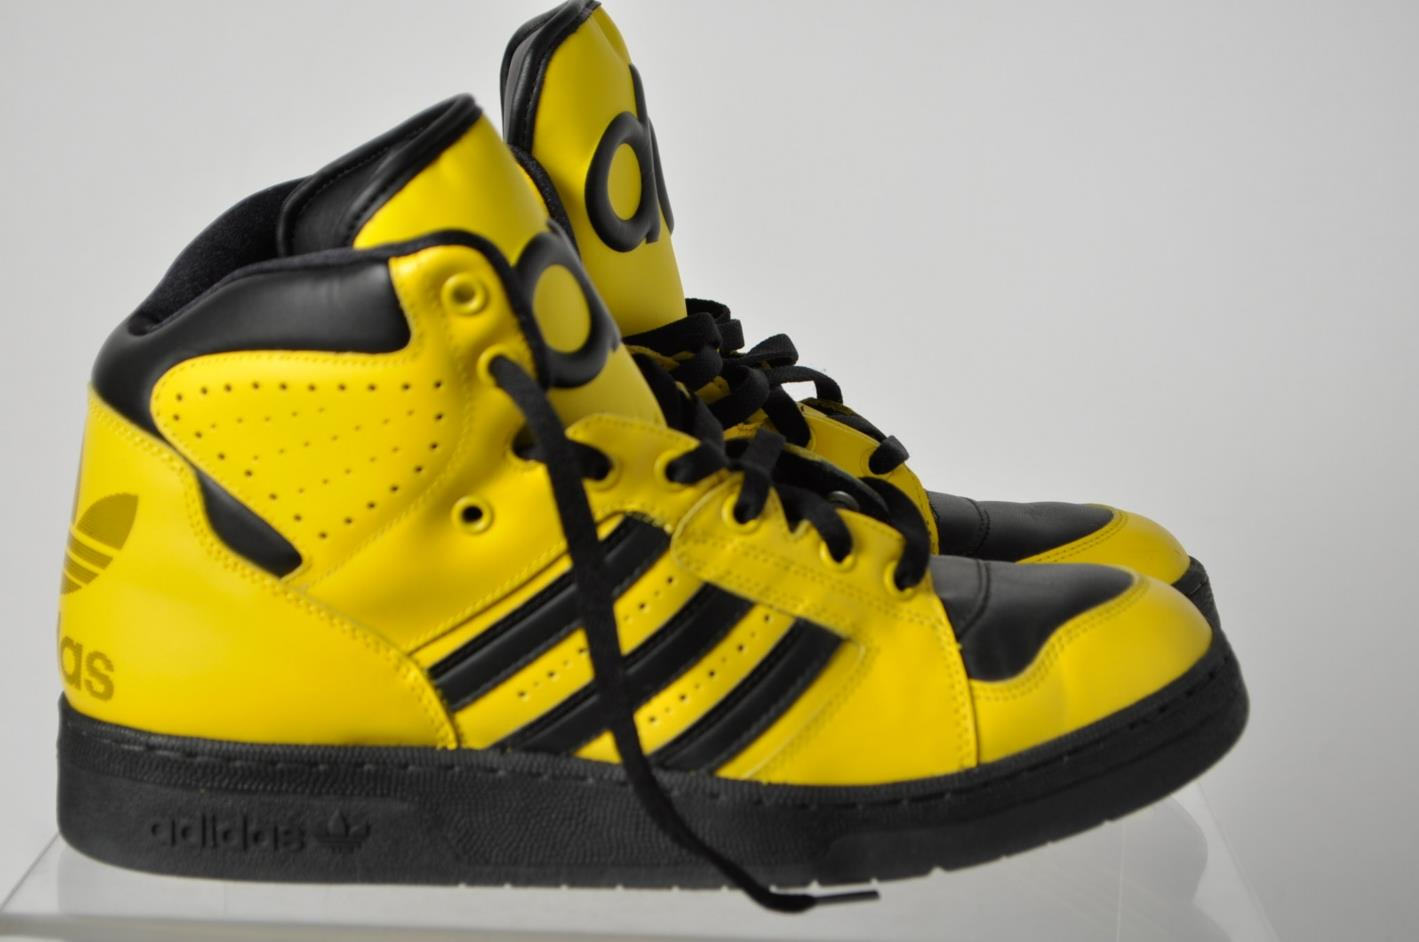 Find the best selection of cheap yellow black basketball shoes in bulk here at xflavismo.ga Including basketball shoes elephant and mens basketball shoes penny hardaway at wholesale prices from yellow black basketball shoes manufacturers. Source discount and high quality products in hundreds of categories wholesale direct from China.